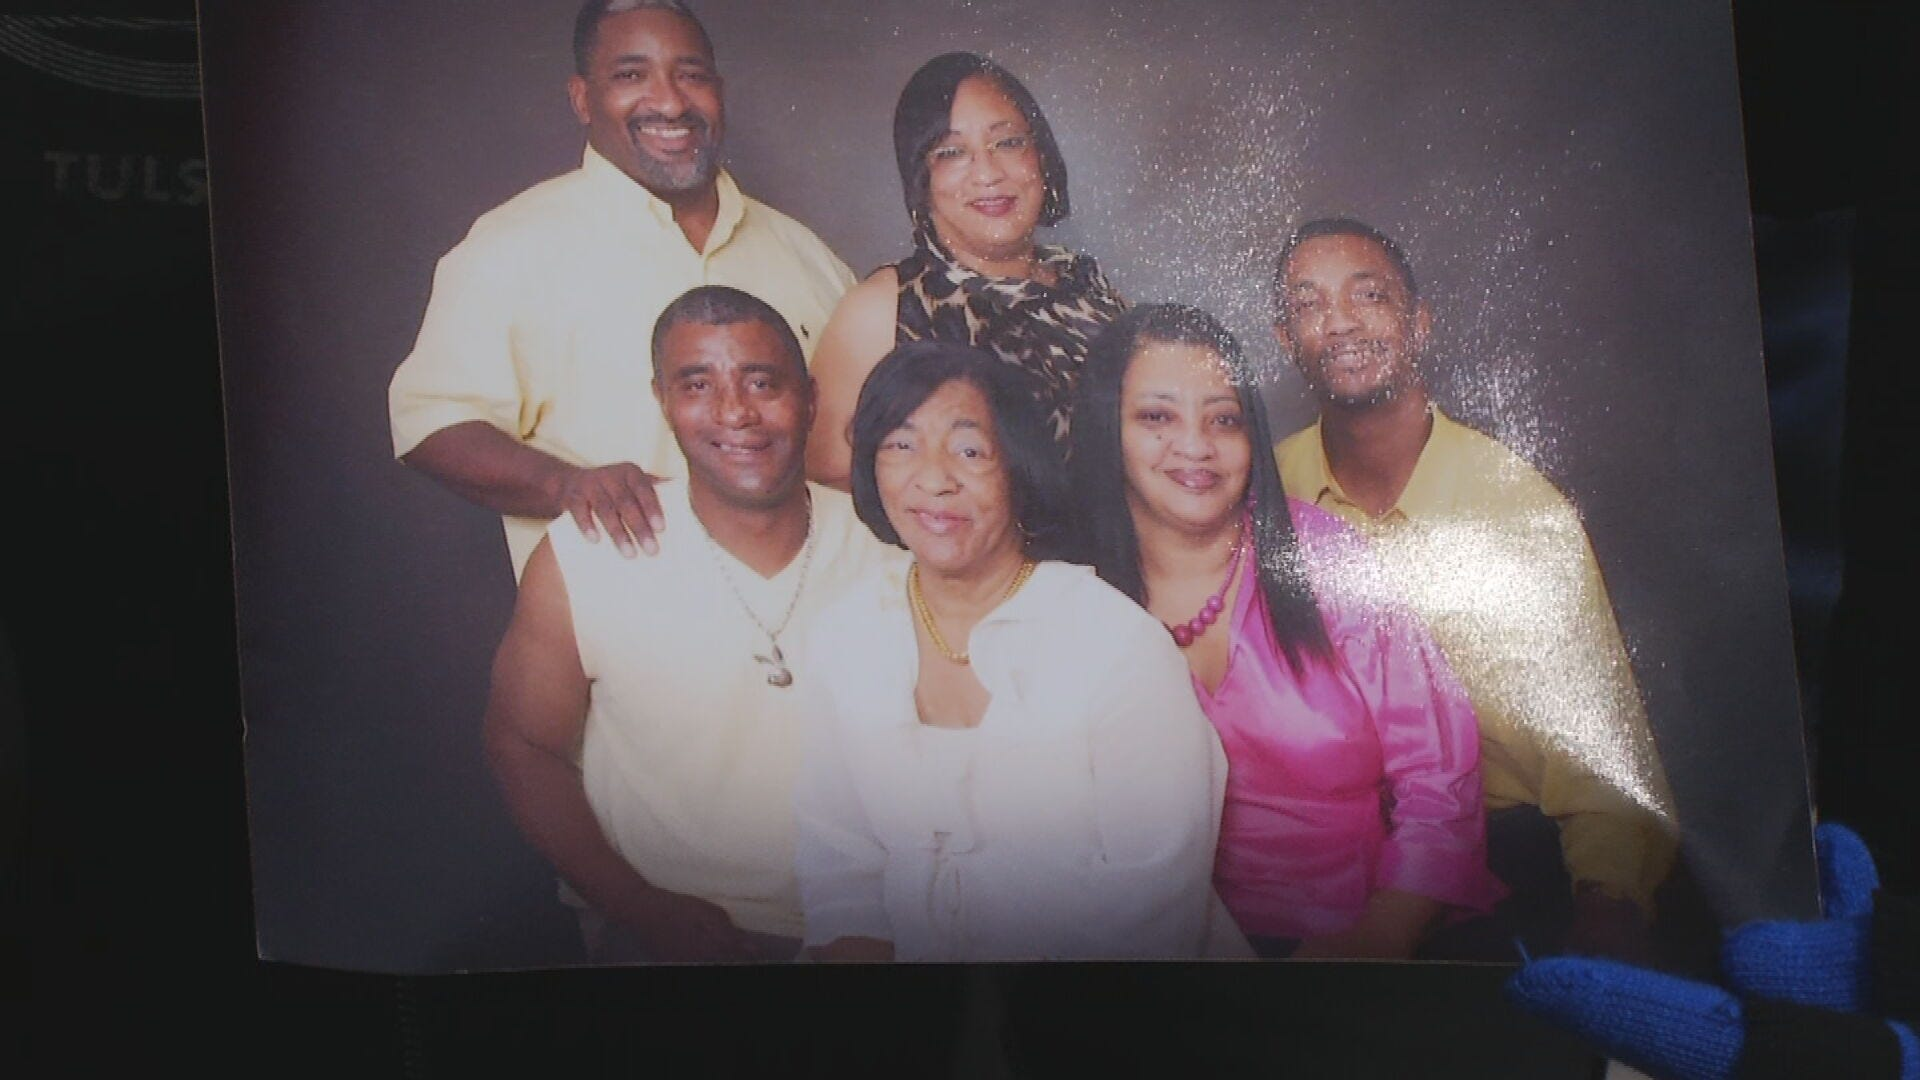 Family Of Crash Victim Wants City To Add More Lighting To Roads